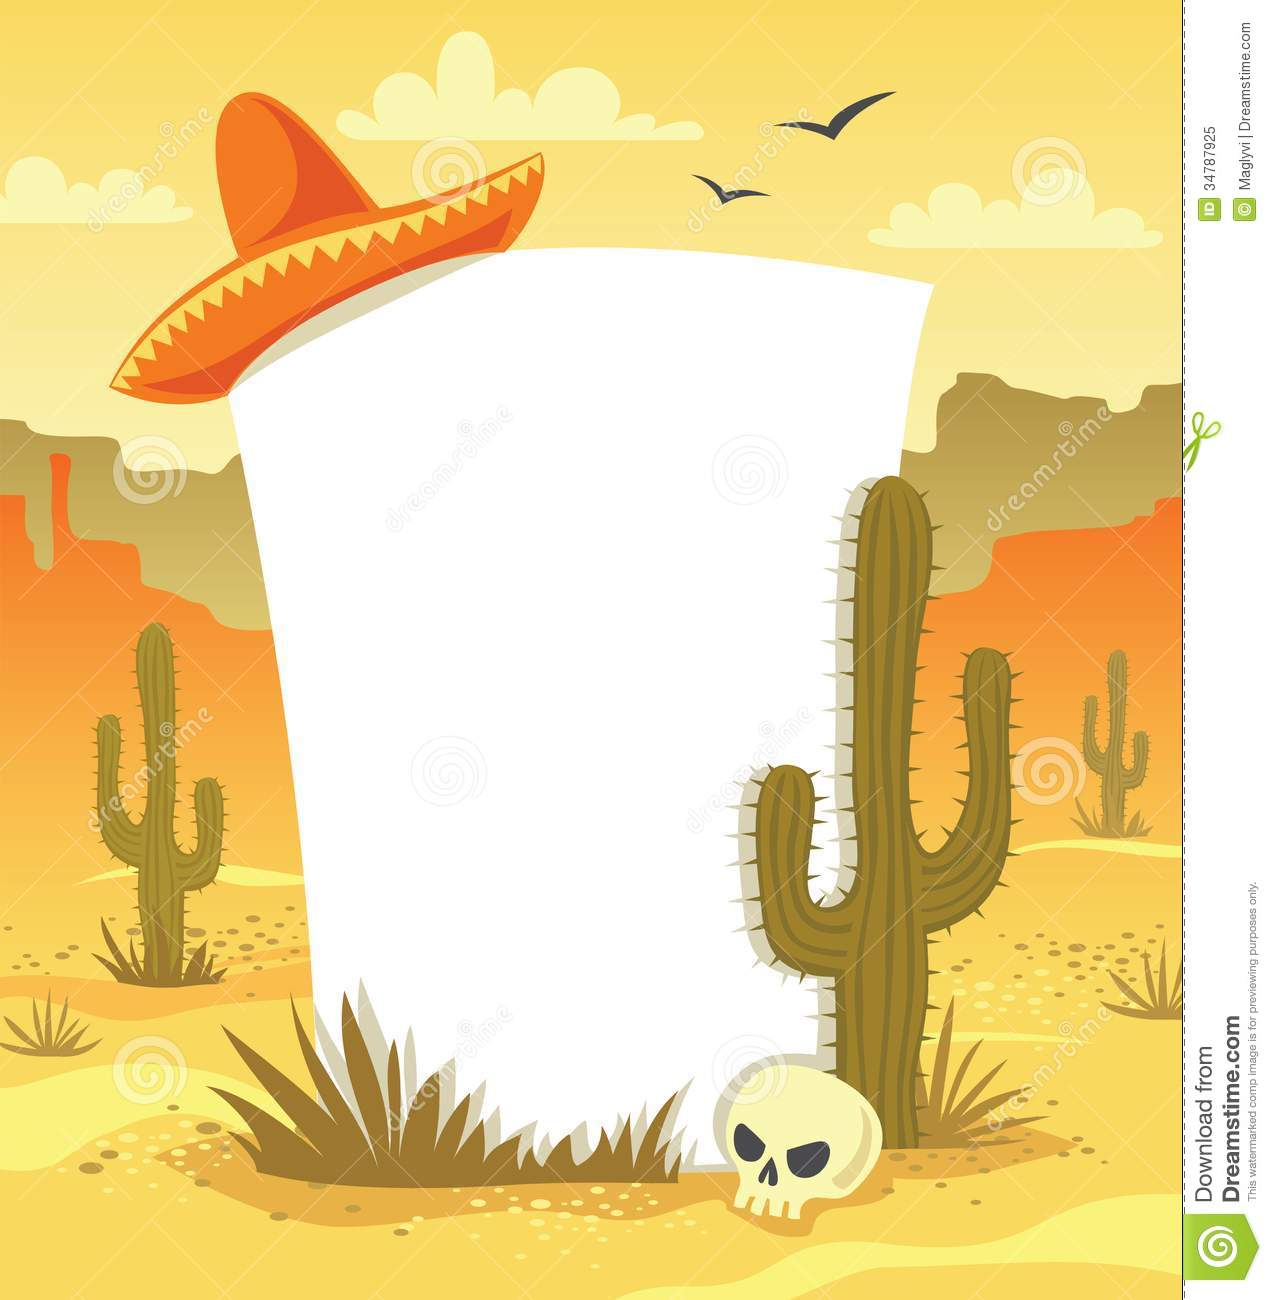 Mexican Background Clipart.